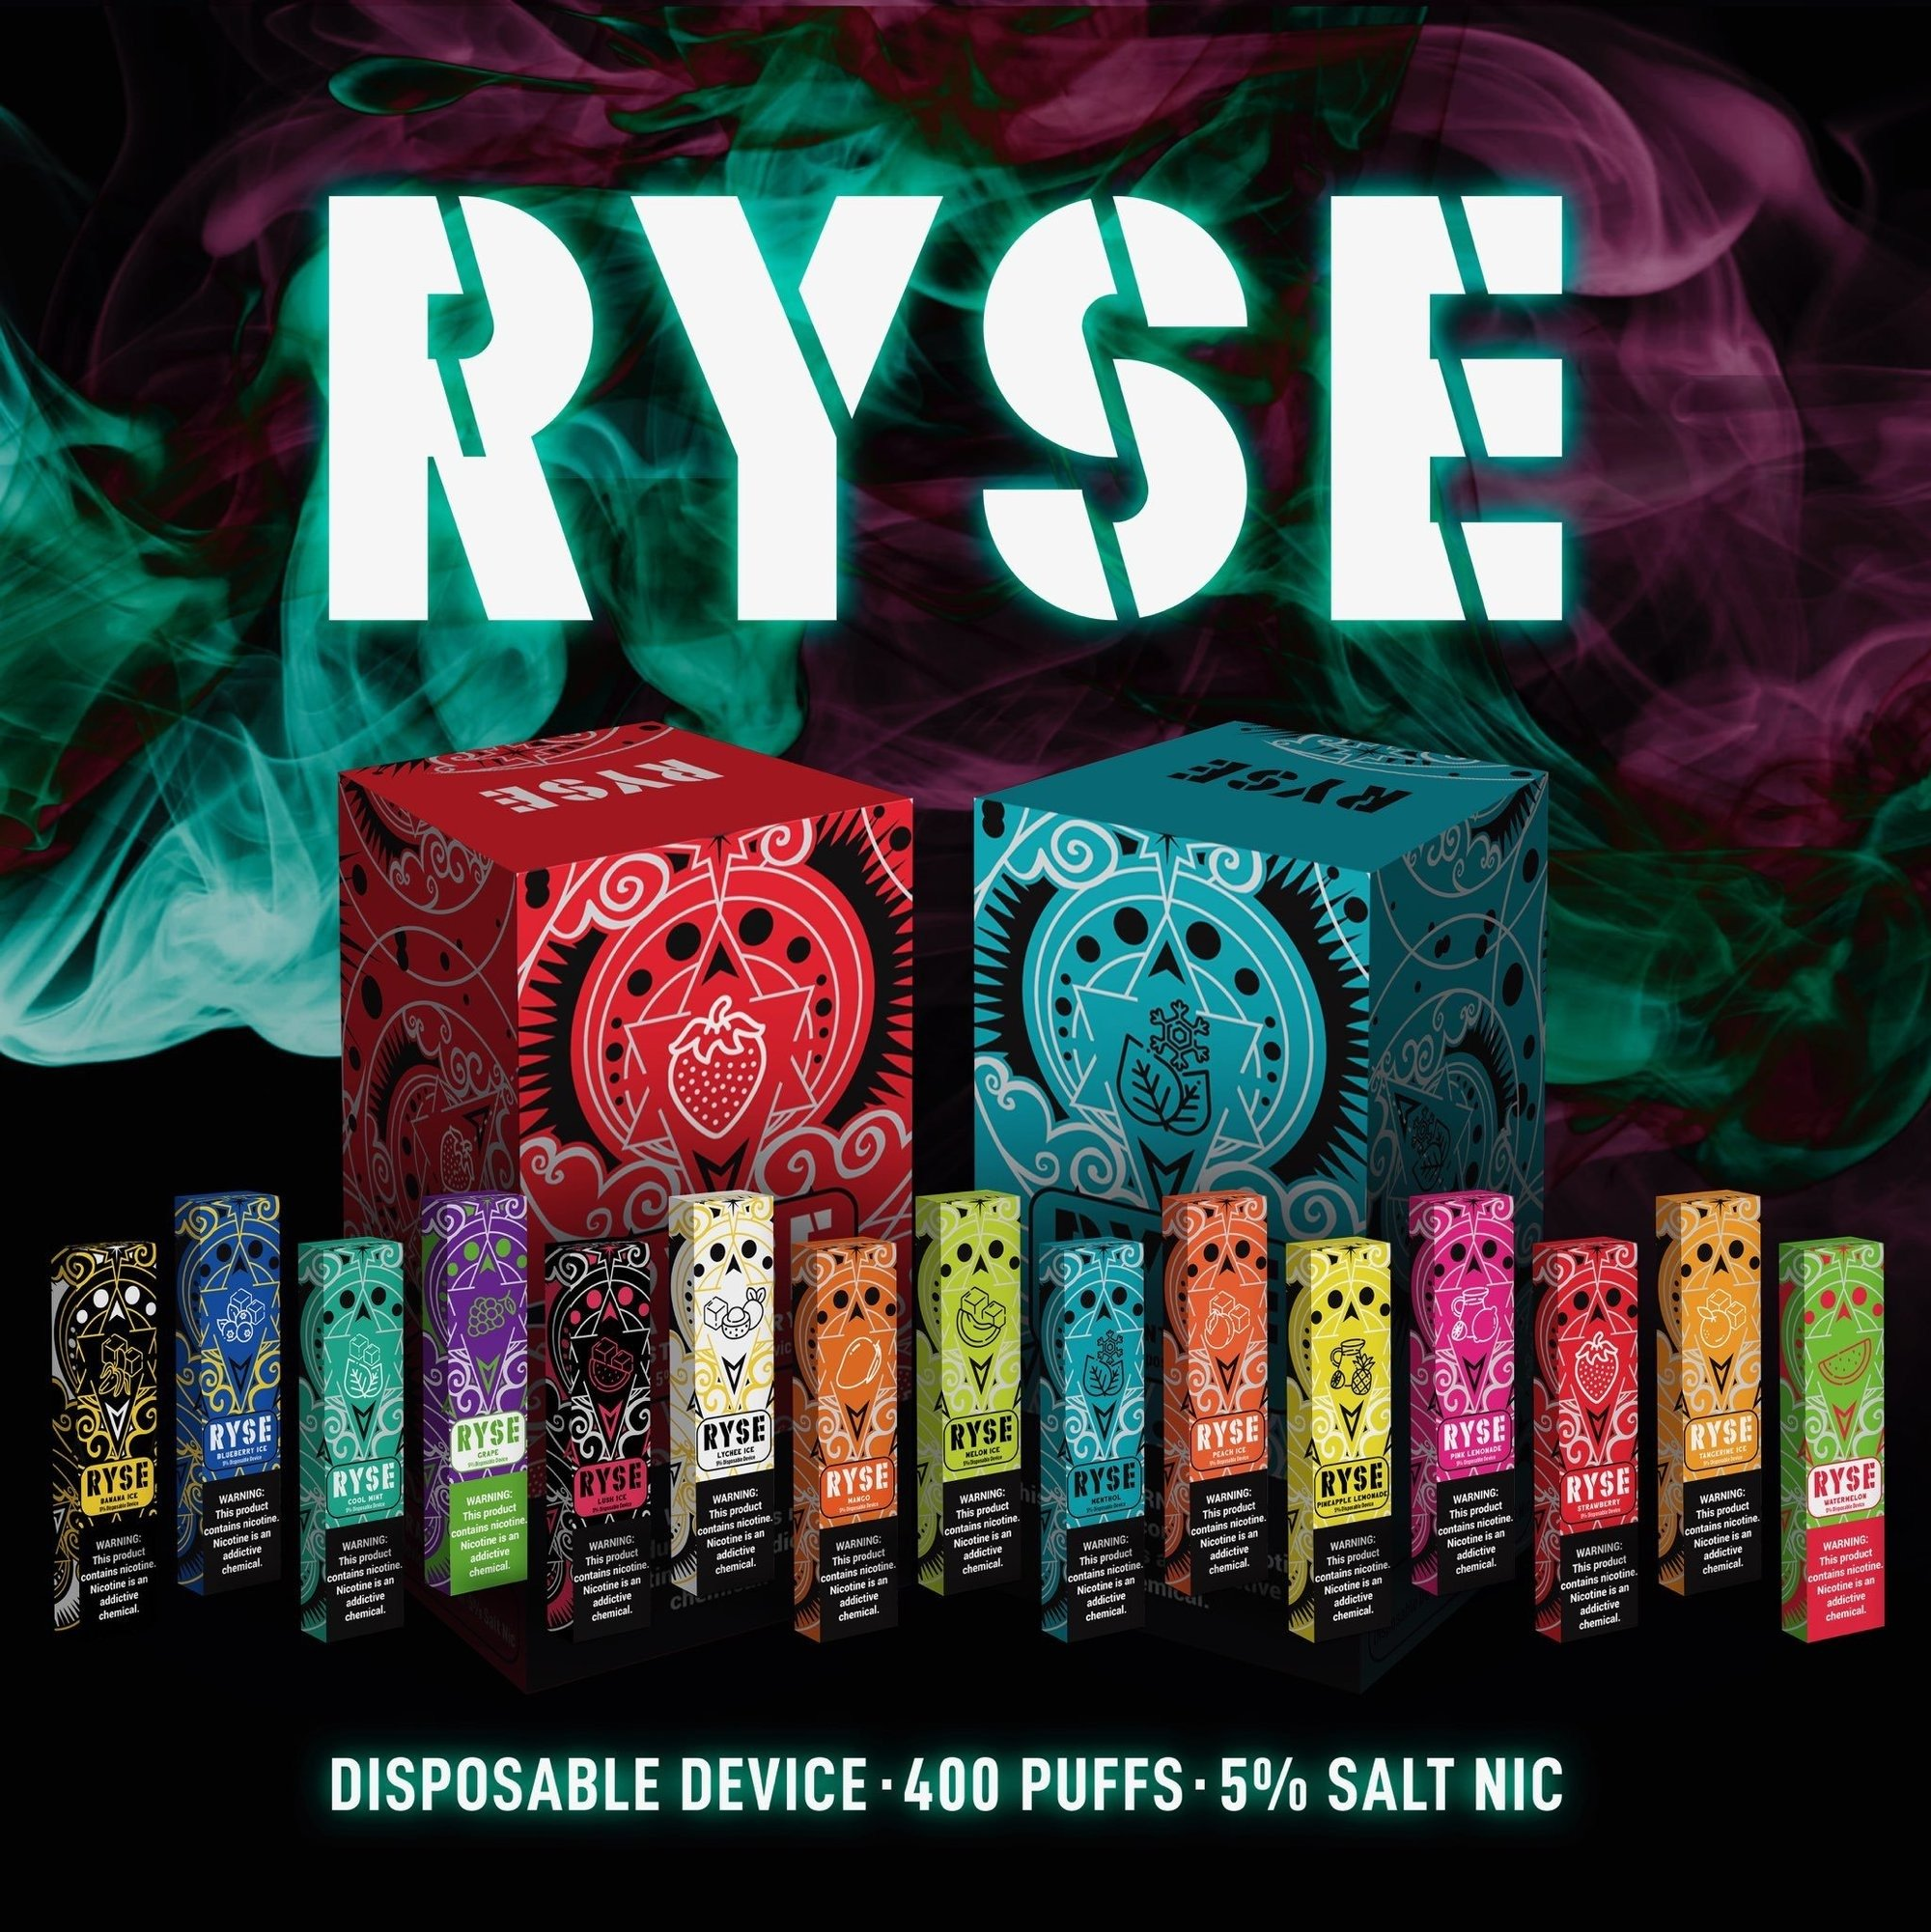 RYSE Disposable Device